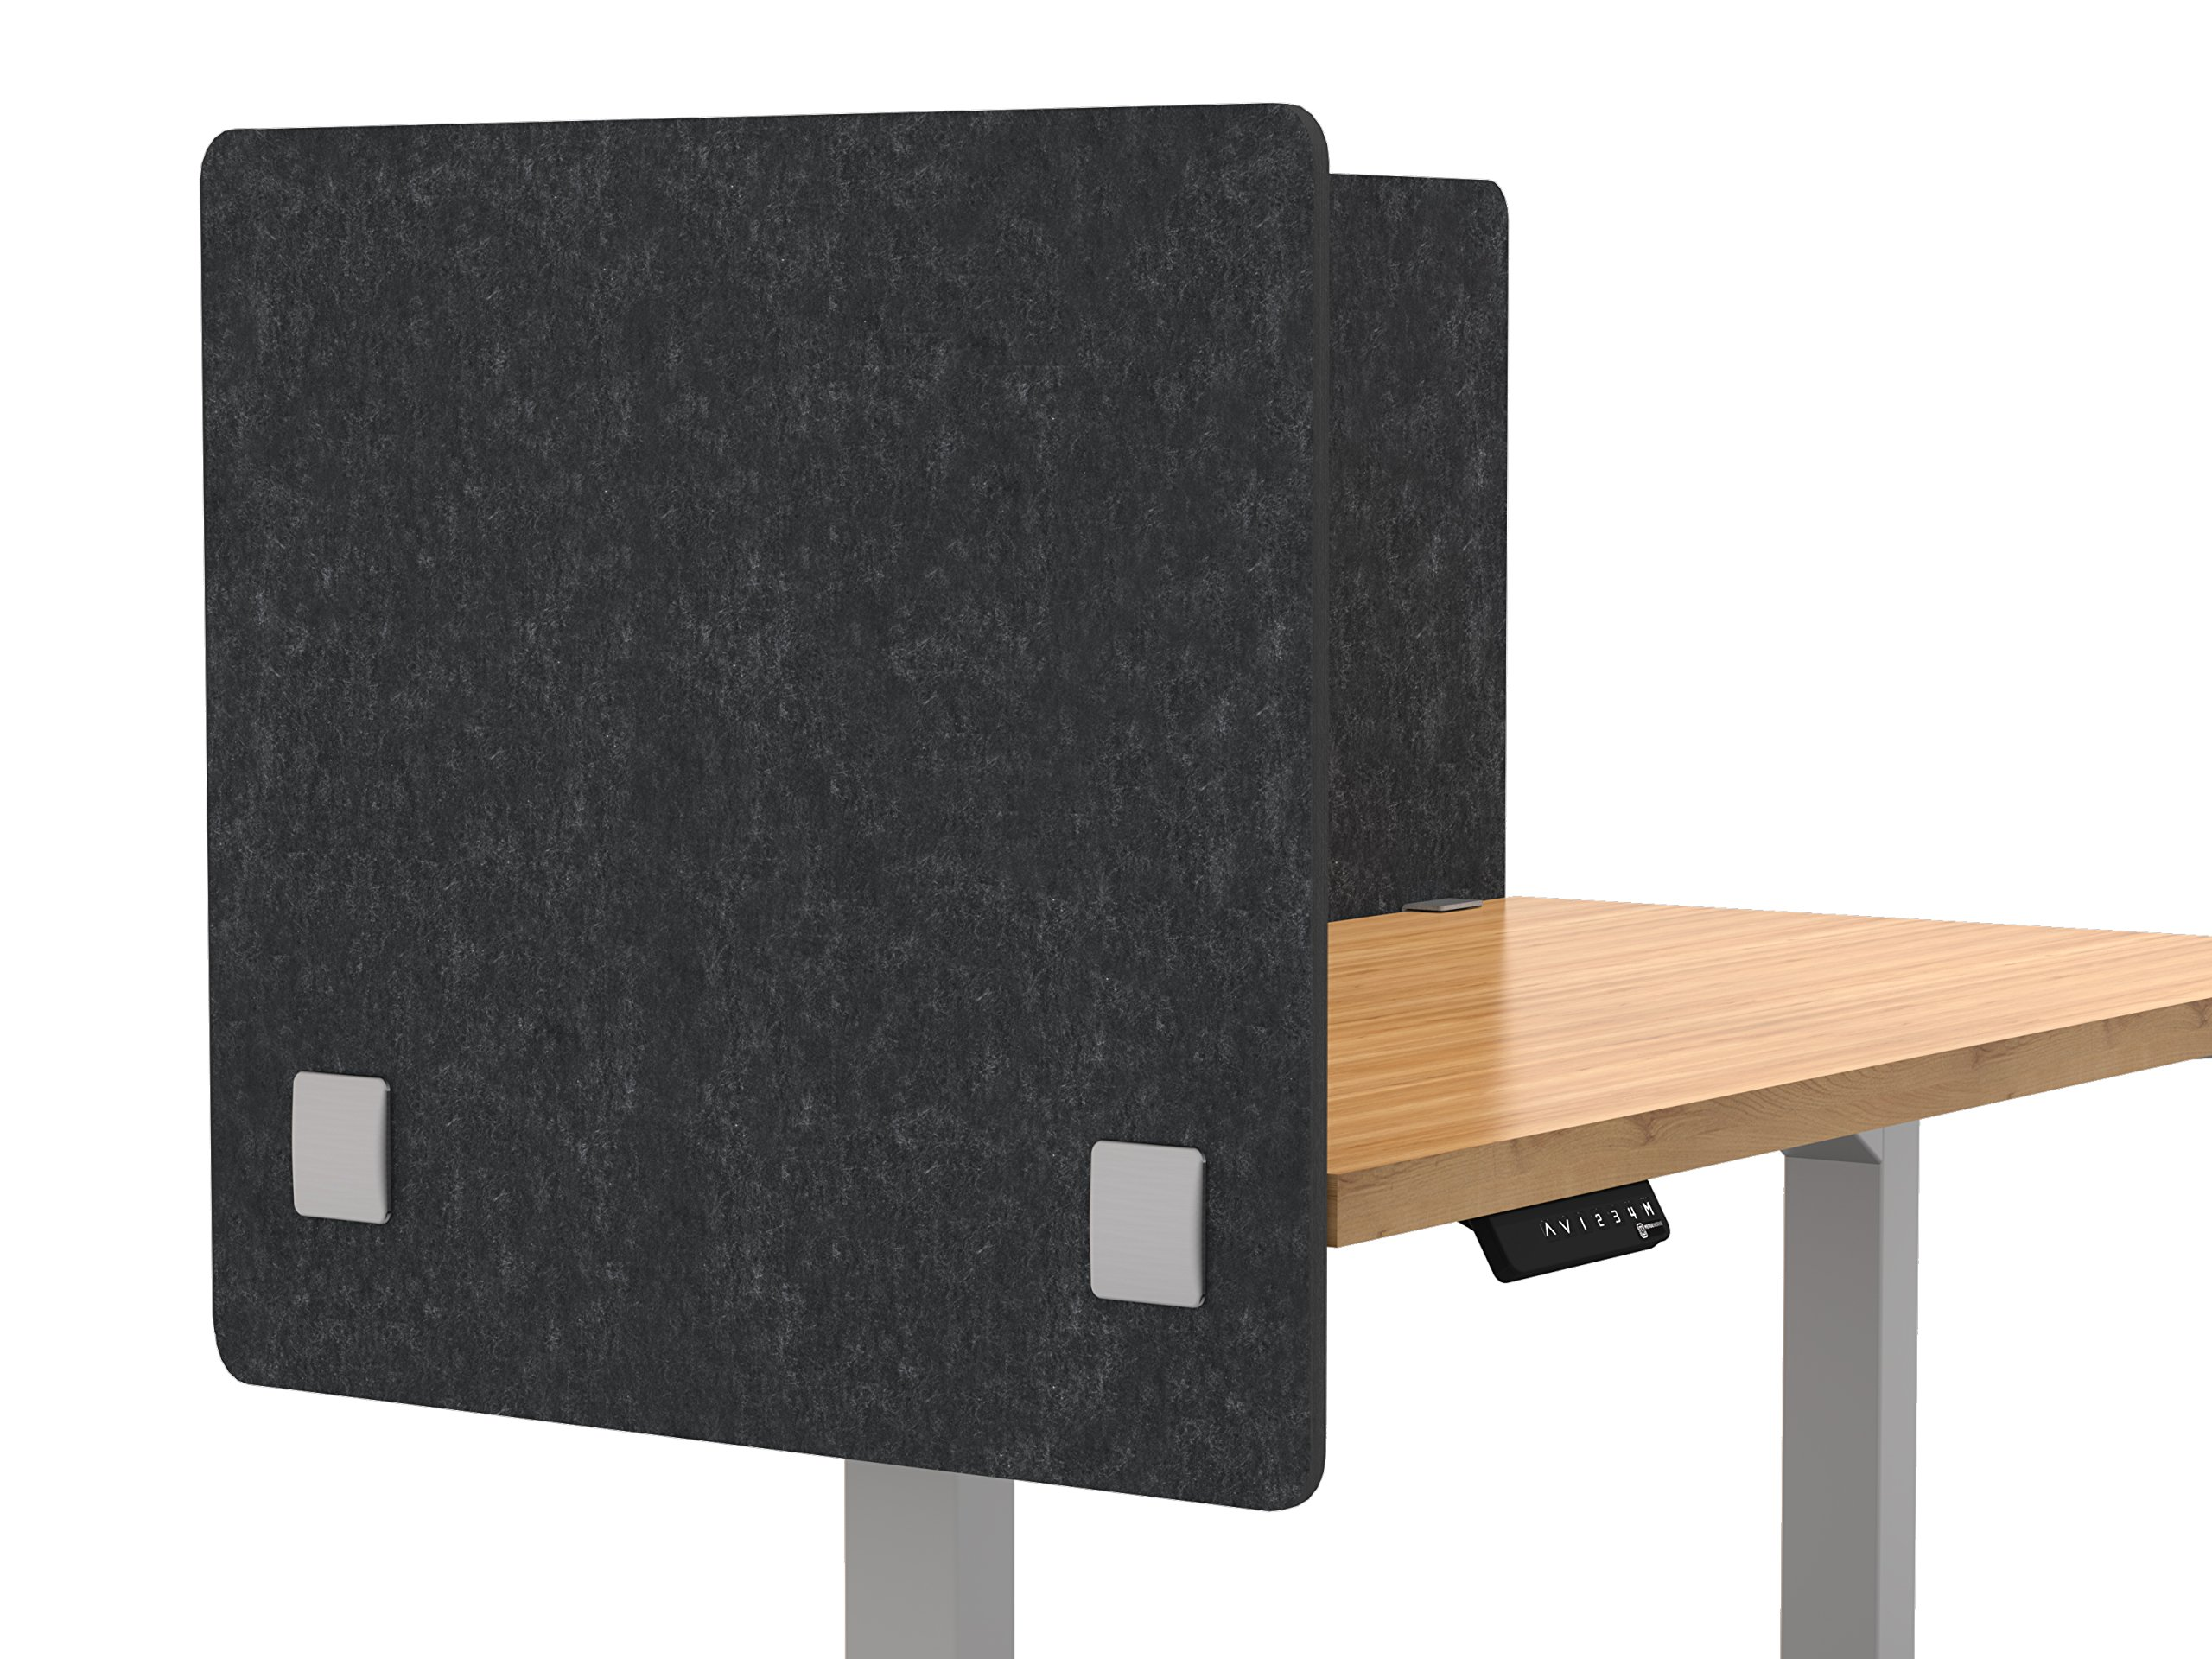 """VaRoom Acoustic Partition, Sound Absorbing Desk Divider – 24"""" W x 24""""H Privacy Desk Mounted Cubicle Panel, Charcoal Grey by VaRoom (Image #5)"""